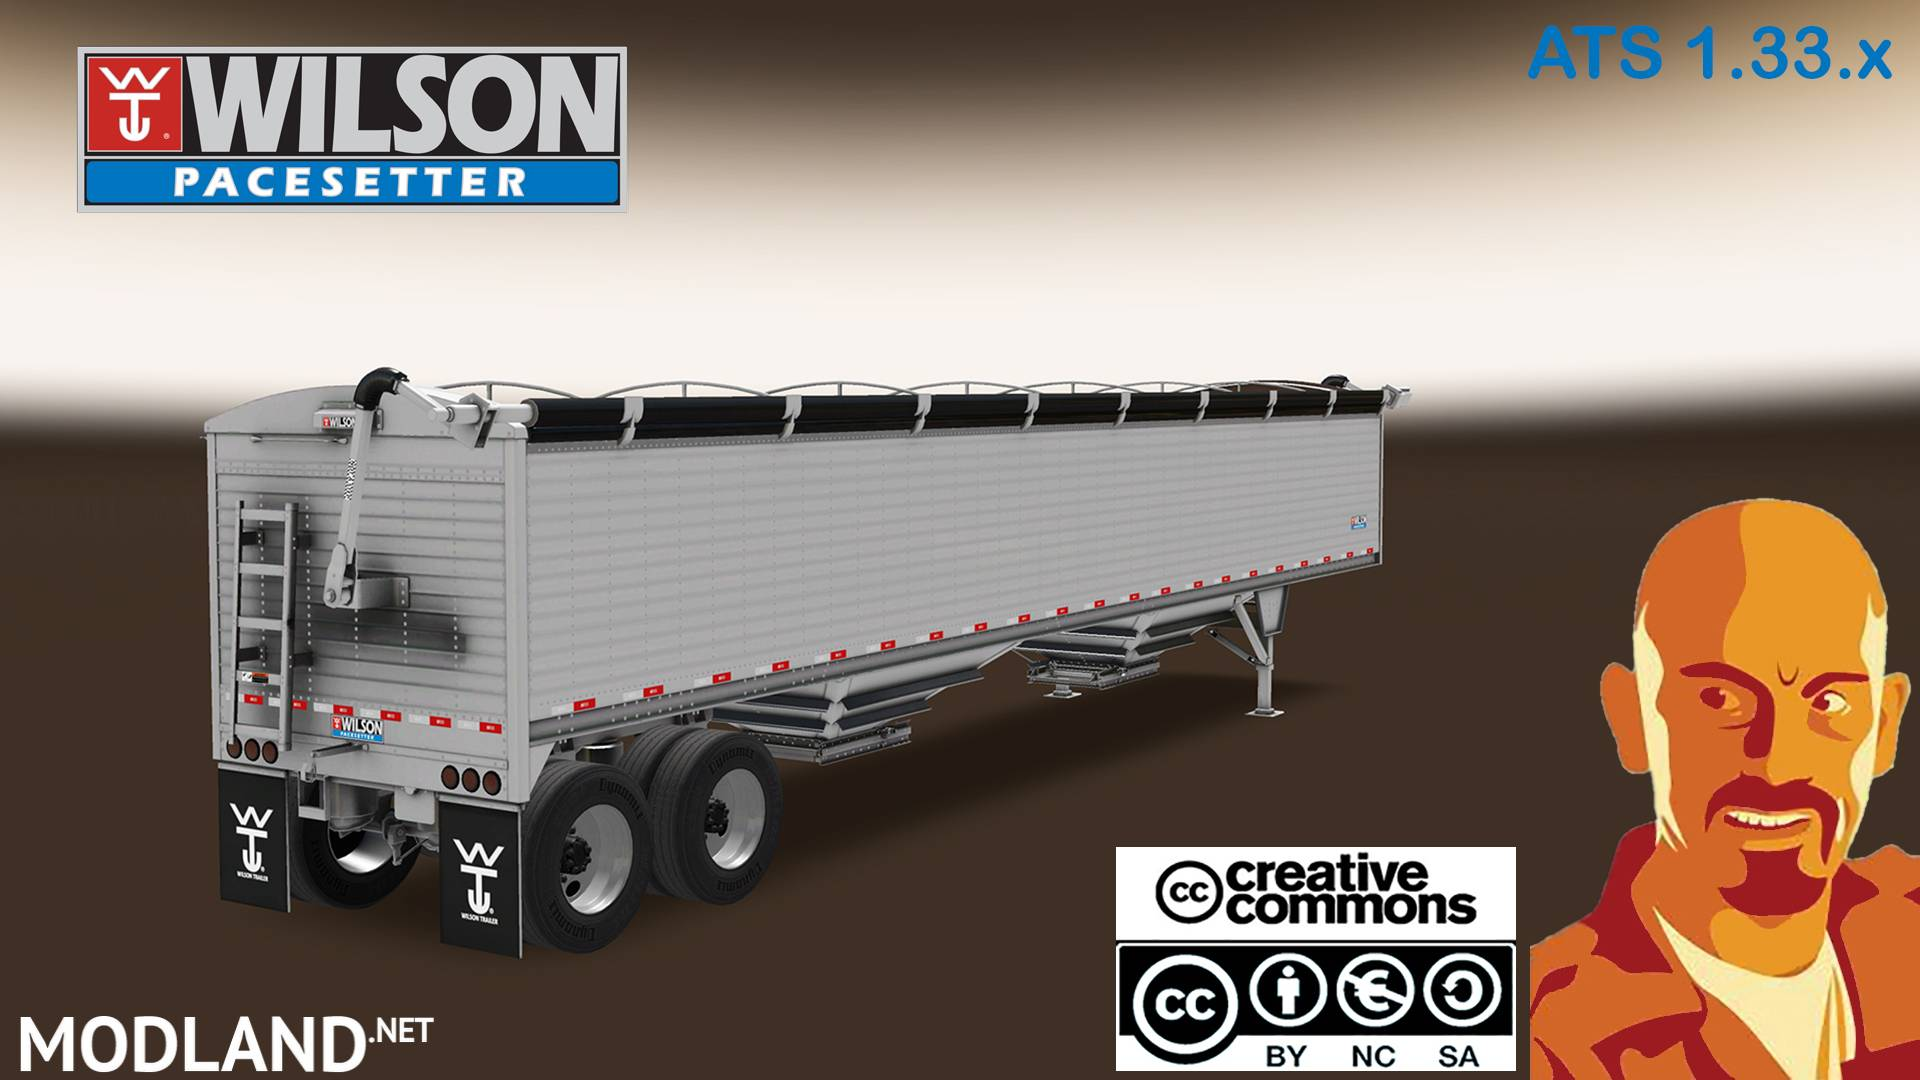 WILSON PACESETTER TRAILER ATS 1 33 x mod for American Truck